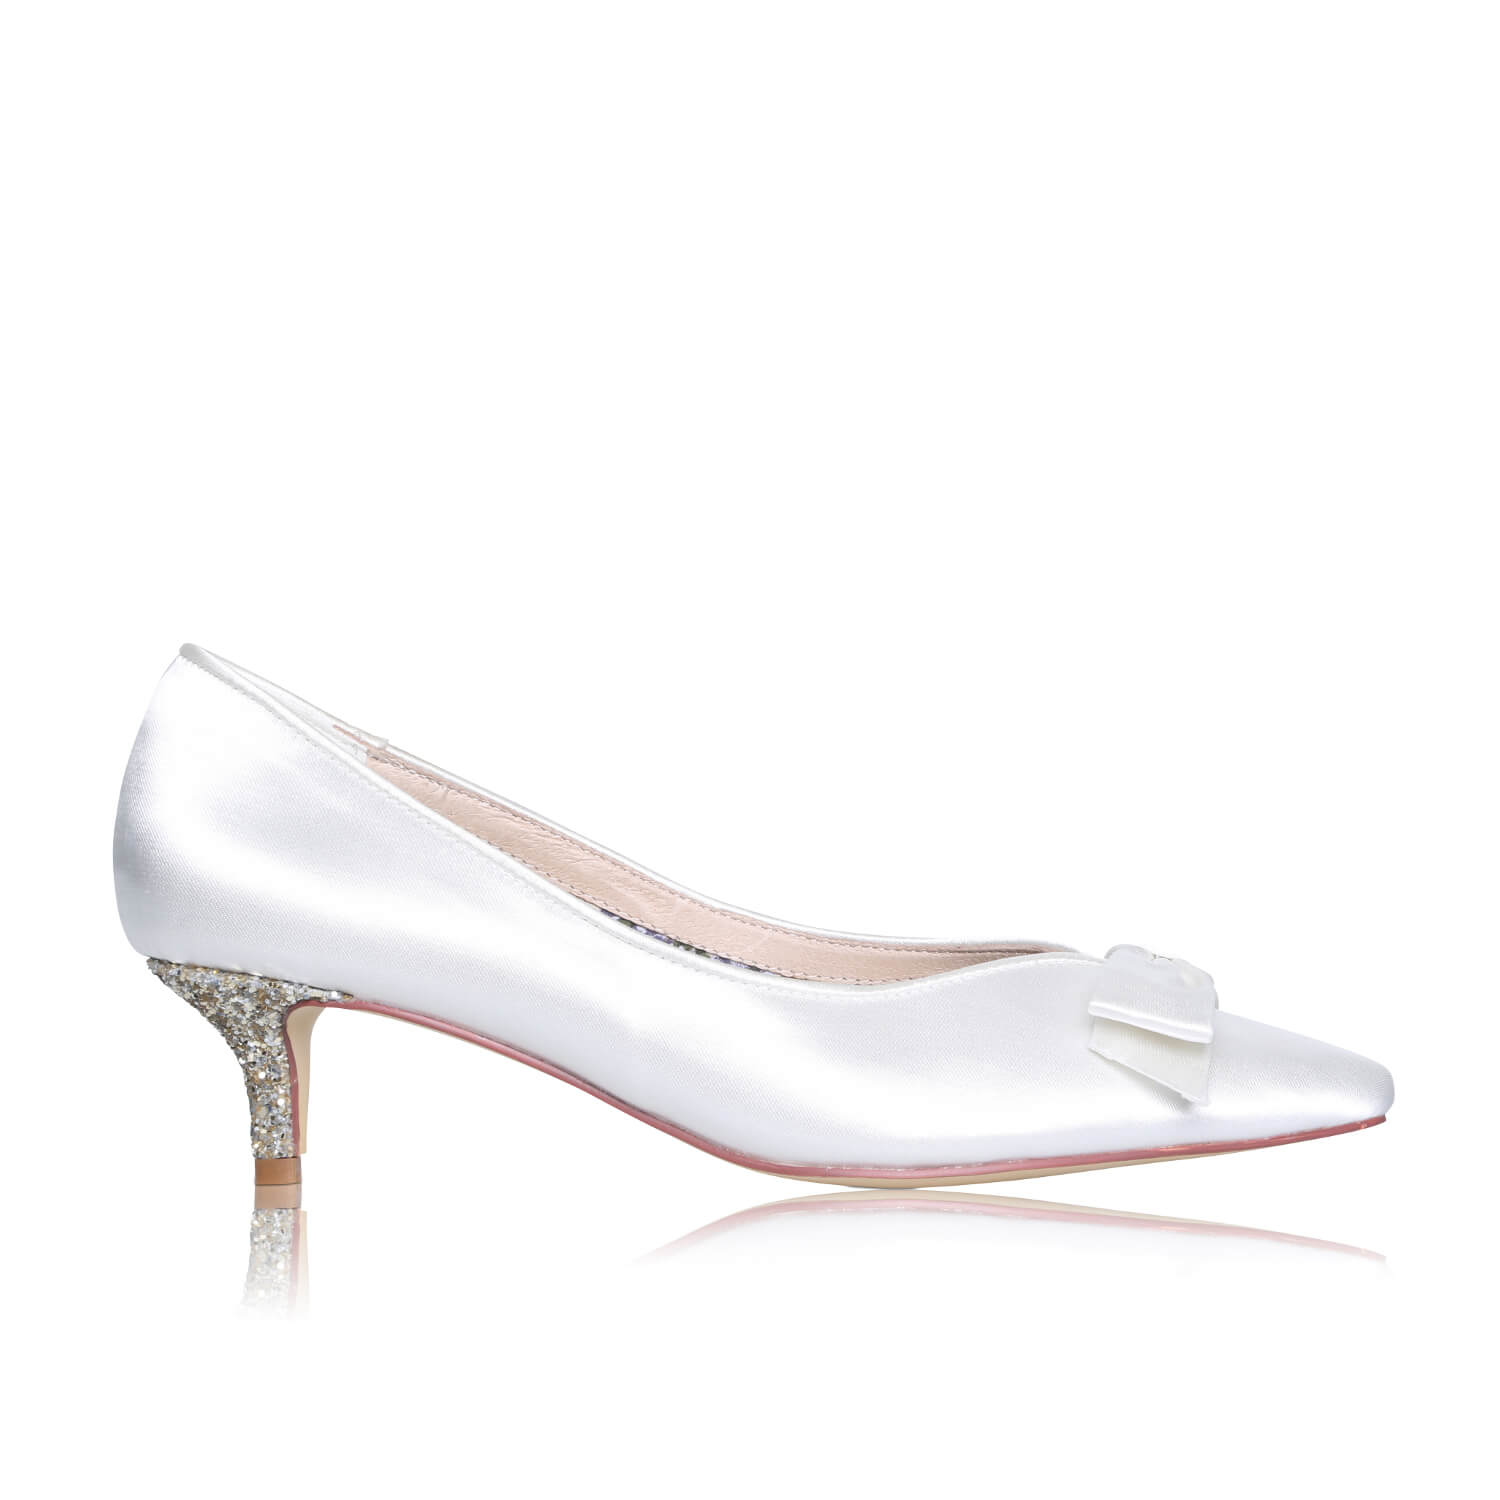 Ivory Bridal Court Shoes Satin /& Leather Pastel Shades Fan Detail Perfect Bridal